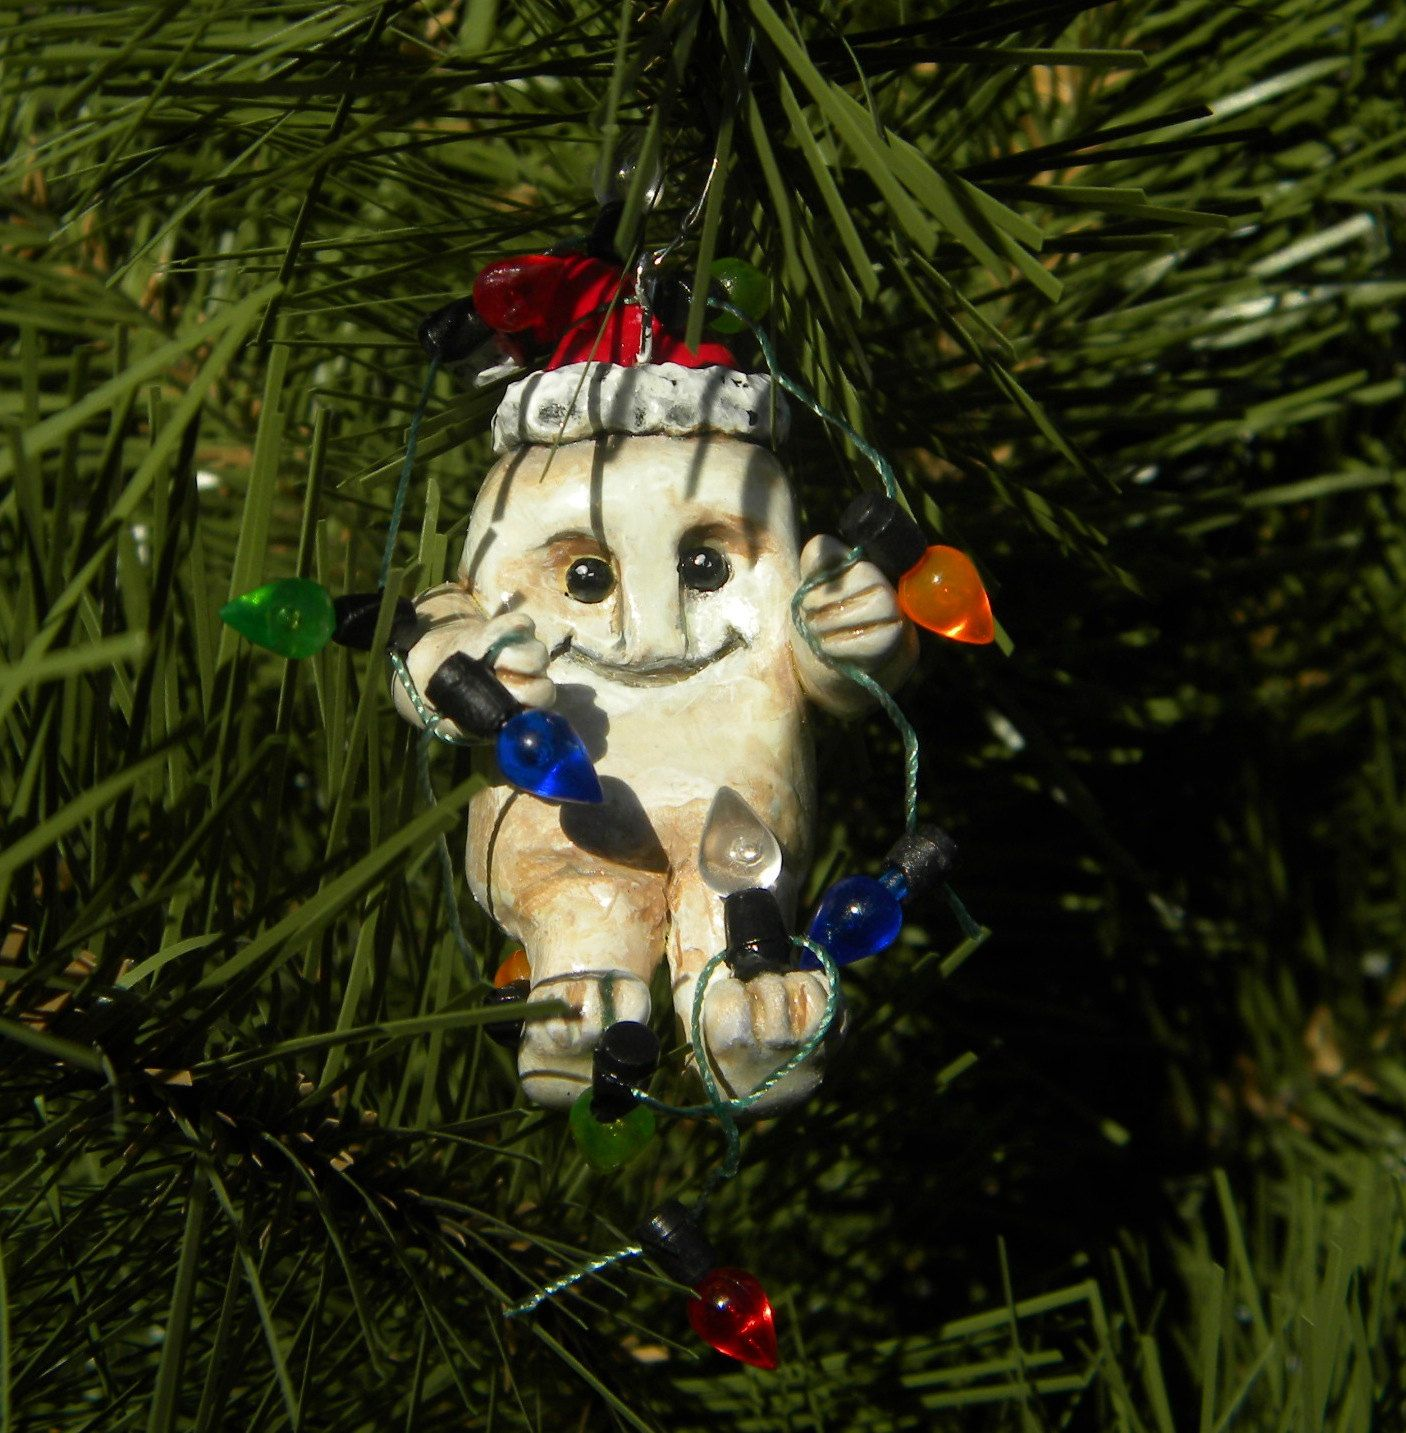 Adipose Christmas Ornament Decked In Lights $2000, Via Etsy